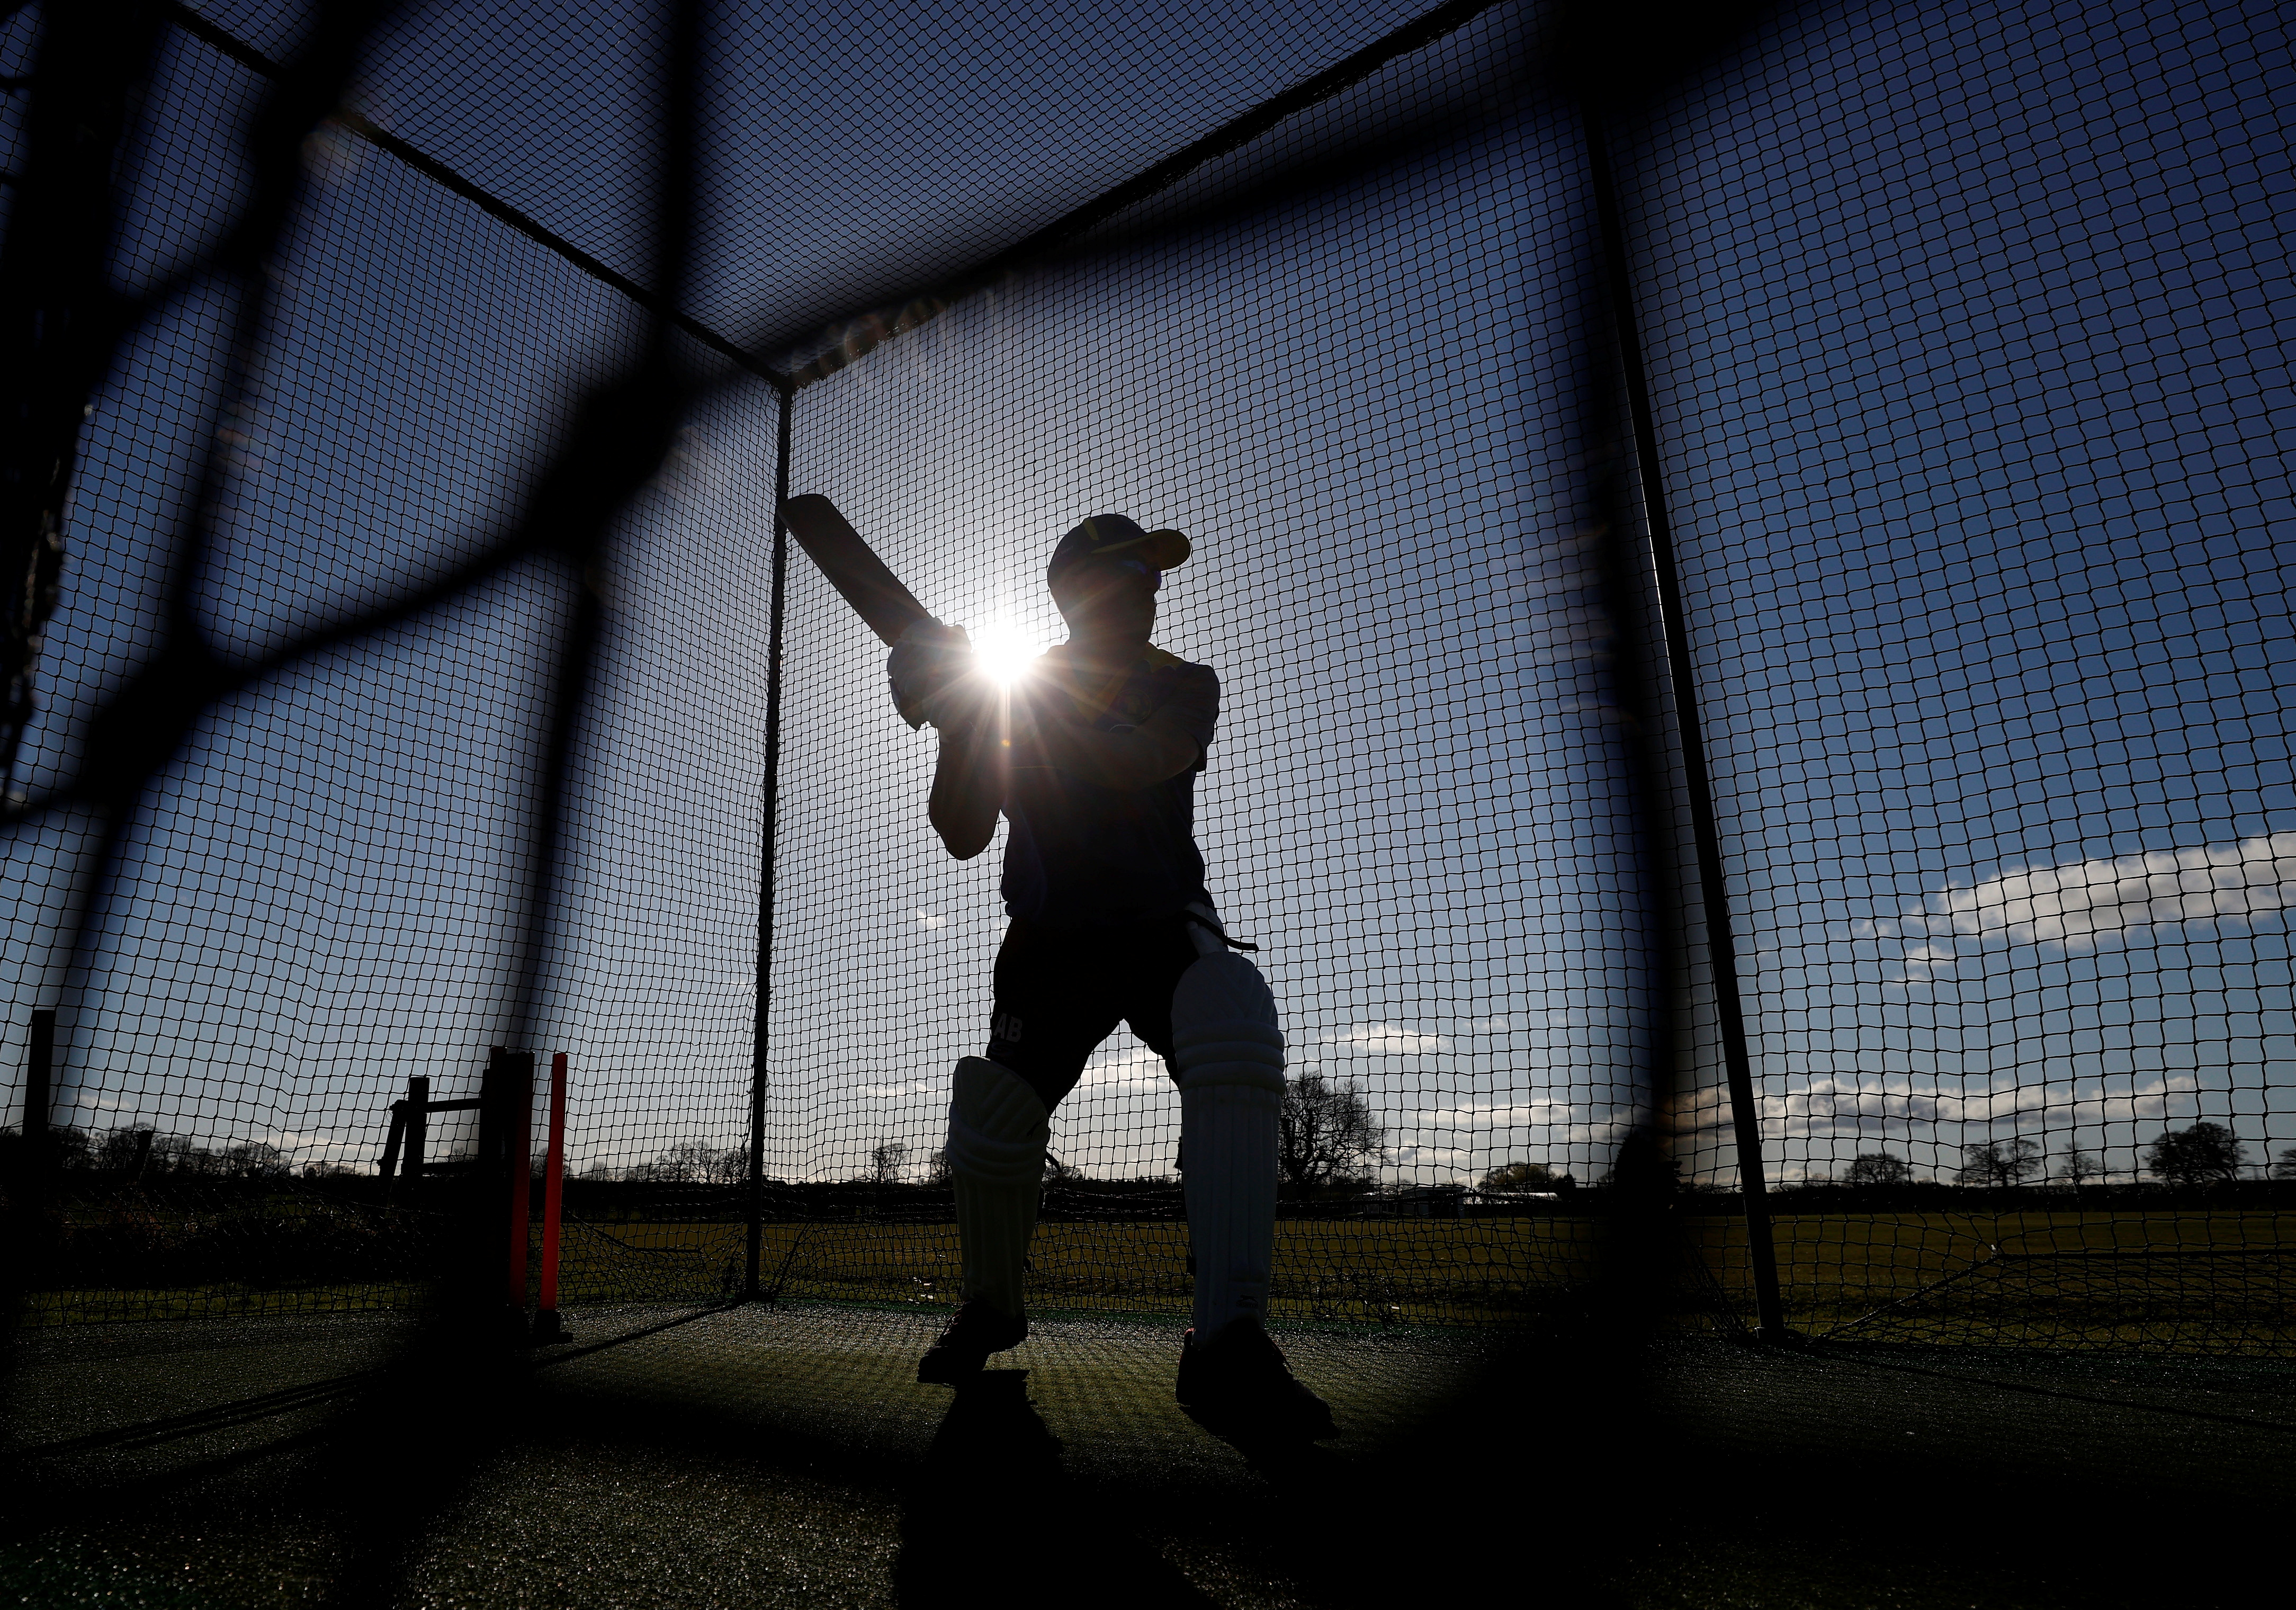 A player from Ashley Cricket Club practices his batting during a training session following the easing of lockdown restrictions, amid the outbreak of the coronavirus disease (COVID-19) in Ashley, Britain, March 29, 2021. REUTERS/Phil Noble